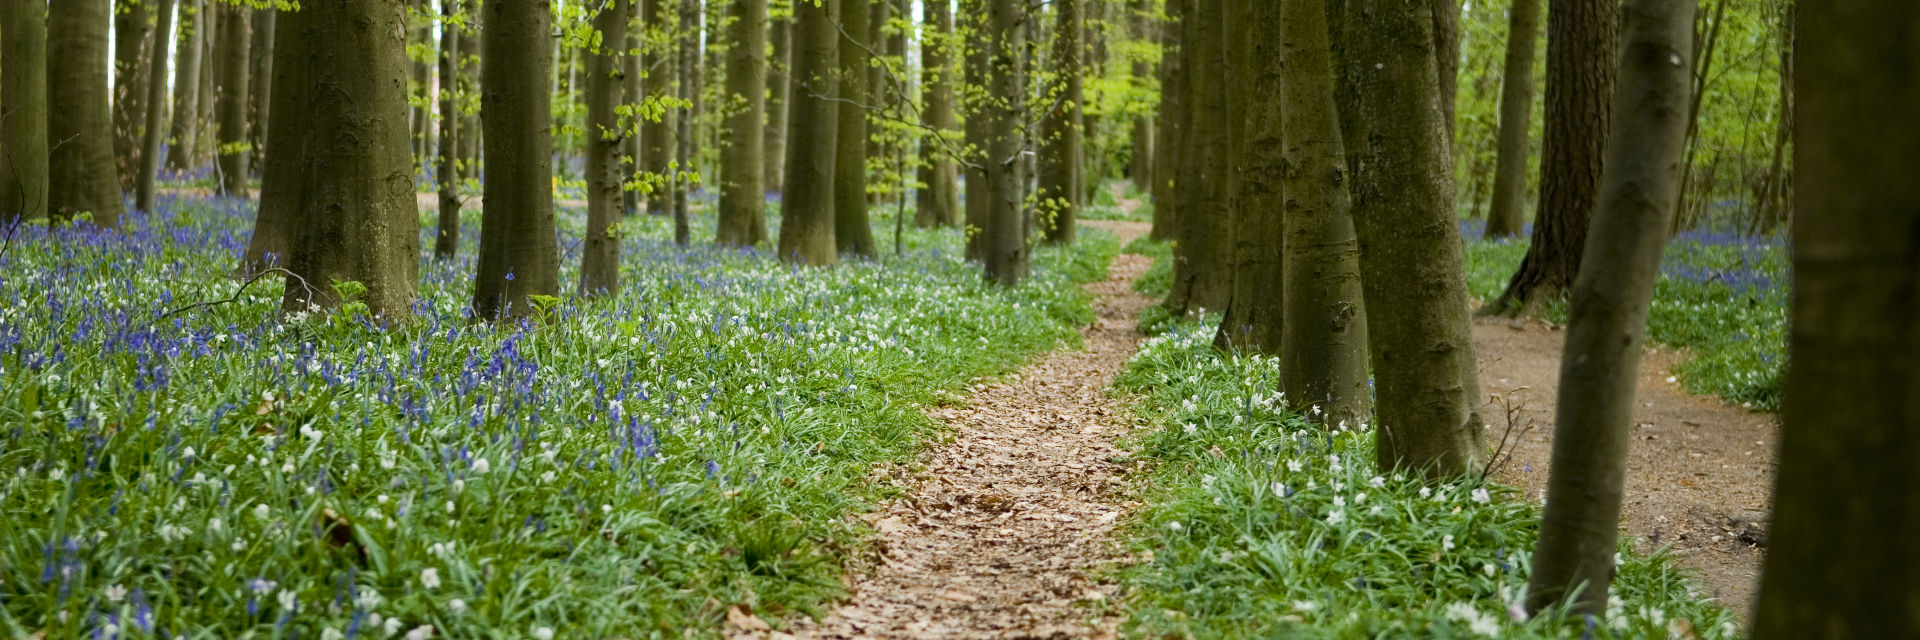 PATH THROUGH THE FOREST © Isselee   Dreamstime.com